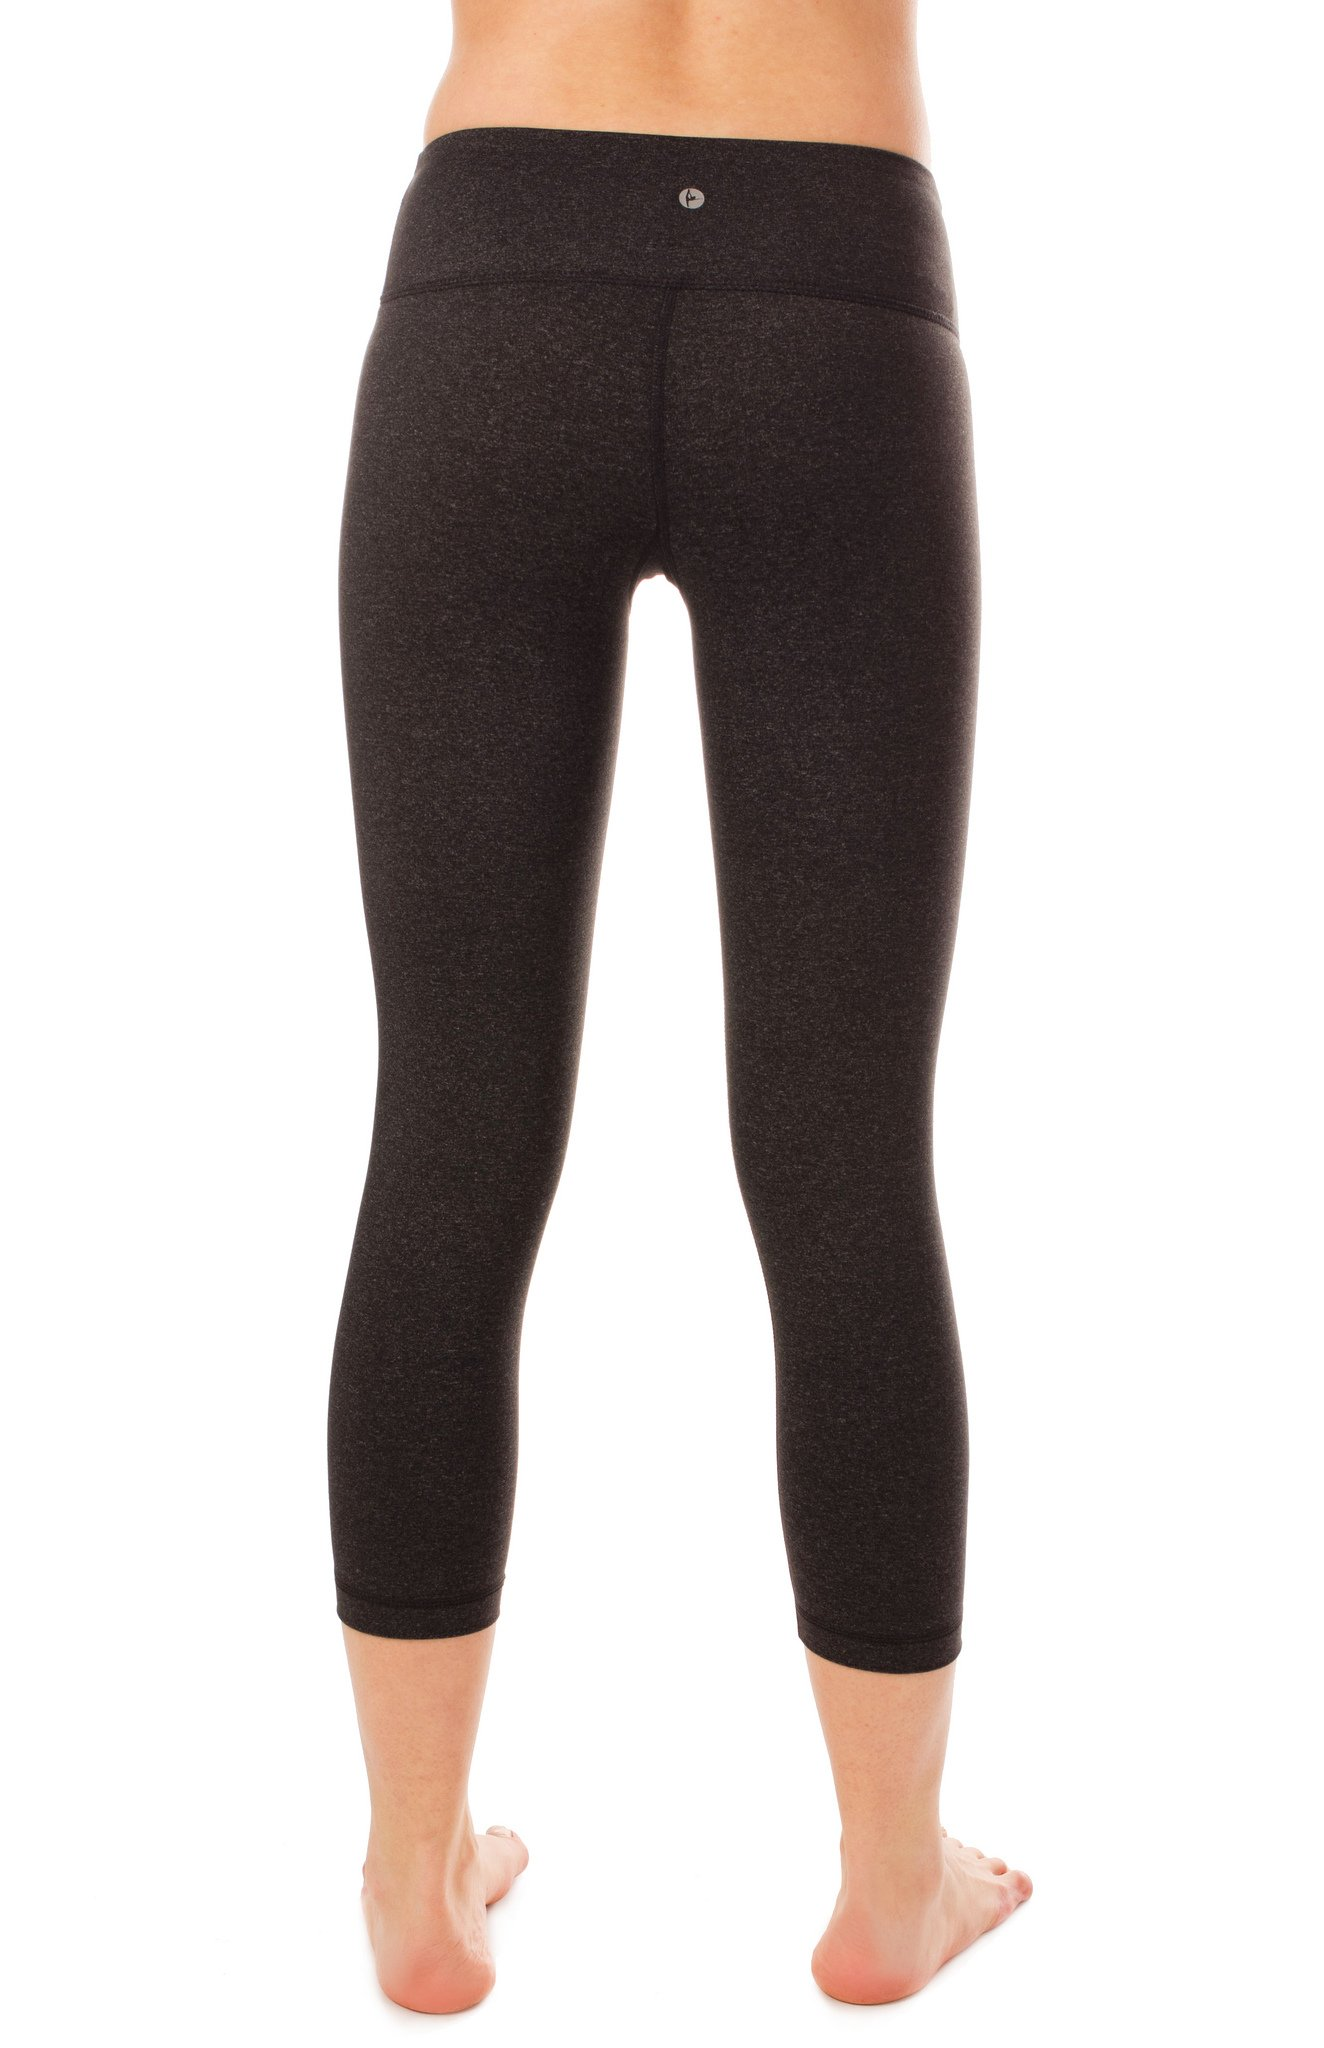 90 Degree By Reflex – Power Flex Yoga Capri – Cationic Heather Activewear Pants - Heather Charcoal XS by 90 Degree By Reflex (Image #4)